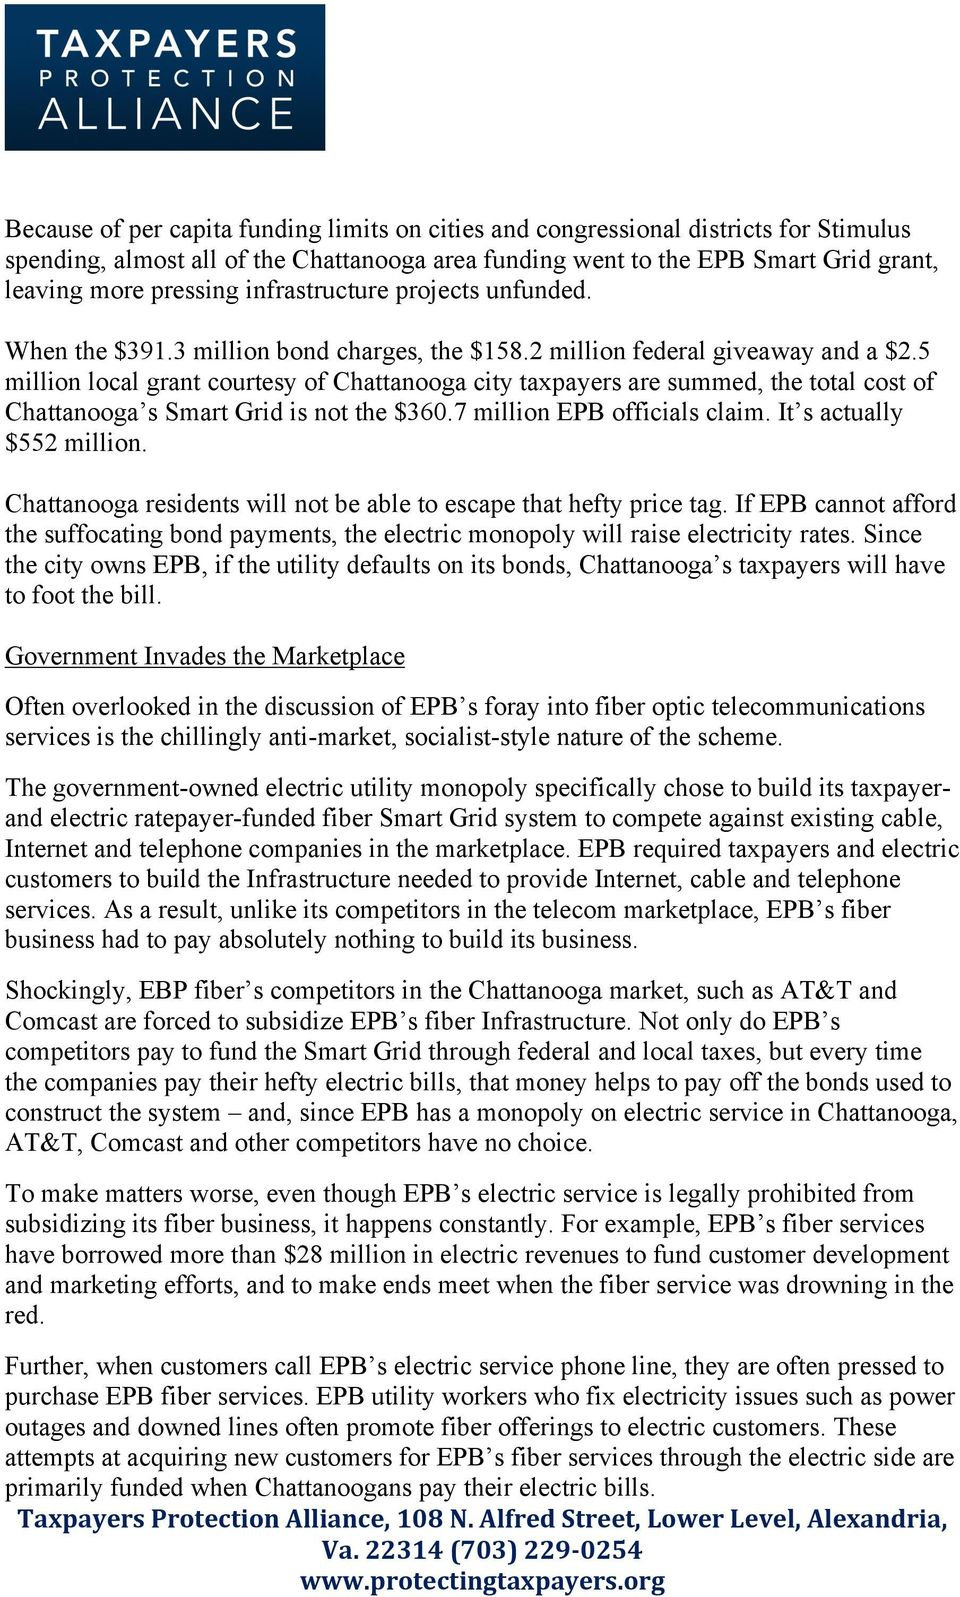 5 million local grant courtesy of Chattanooga city taxpayers are summed, the total cost of Chattanooga s Smart Grid is not the $360.7 million EPB officials claim. It s actually $552 million.